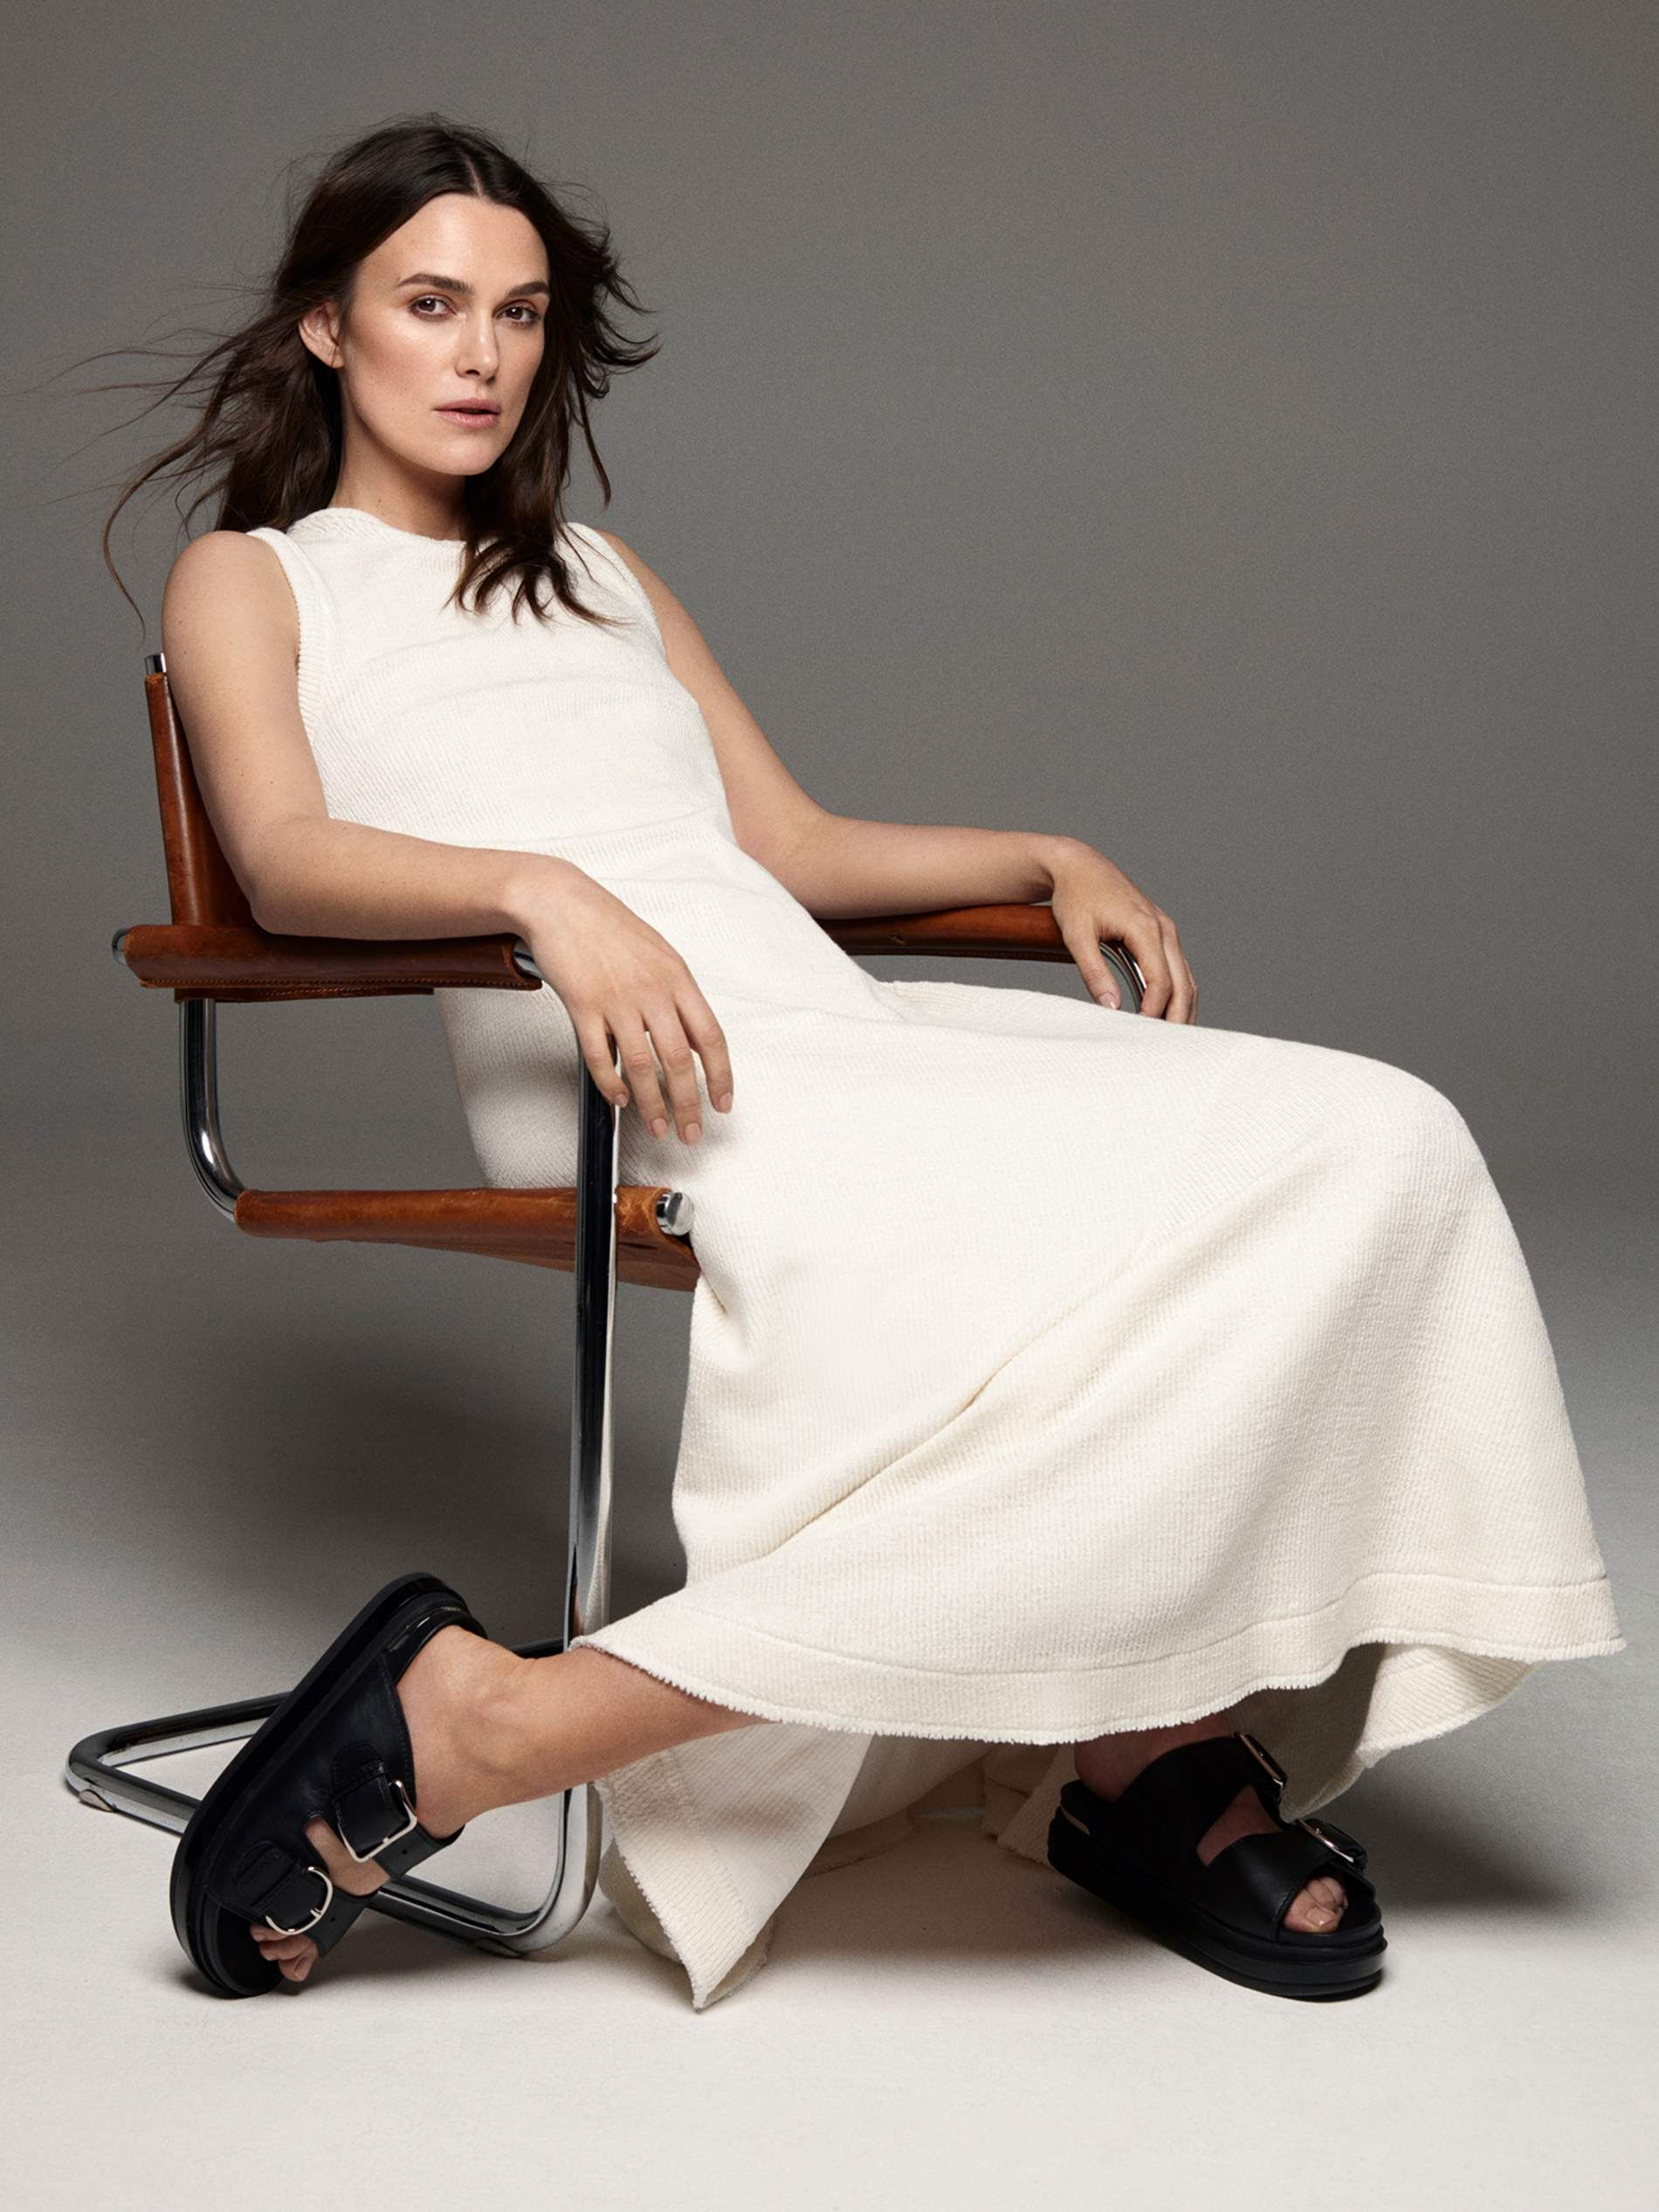 Keira Knightley on fame, family & busting that fairytale